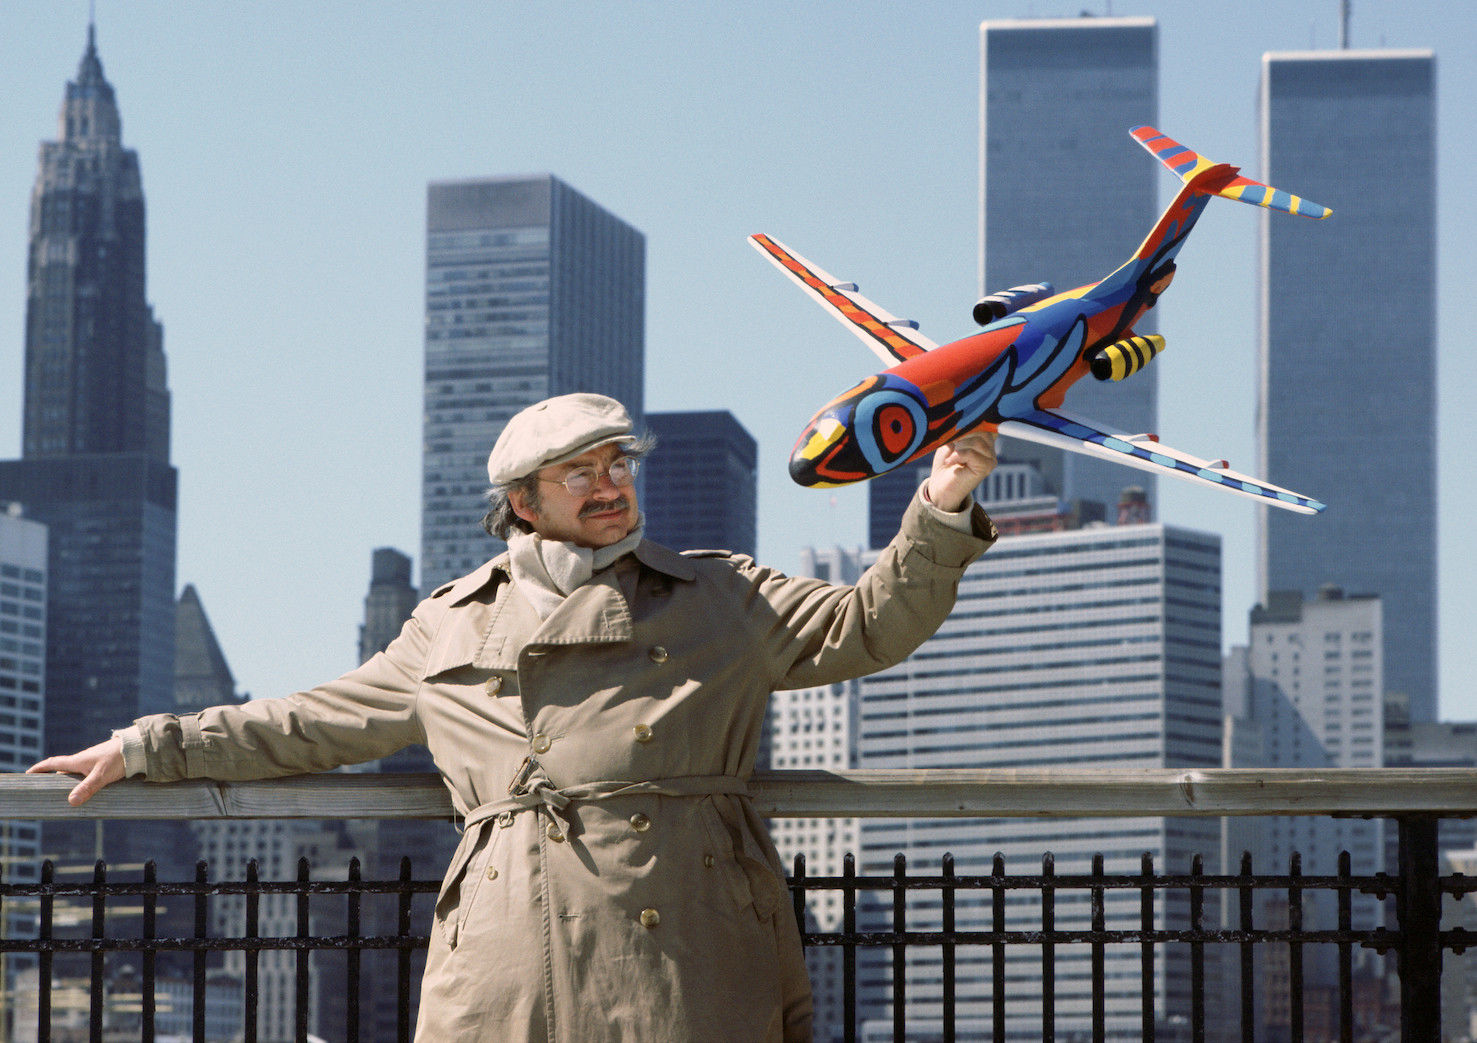 Karel Appel with a Fokker-100 in front of the former WTC building.